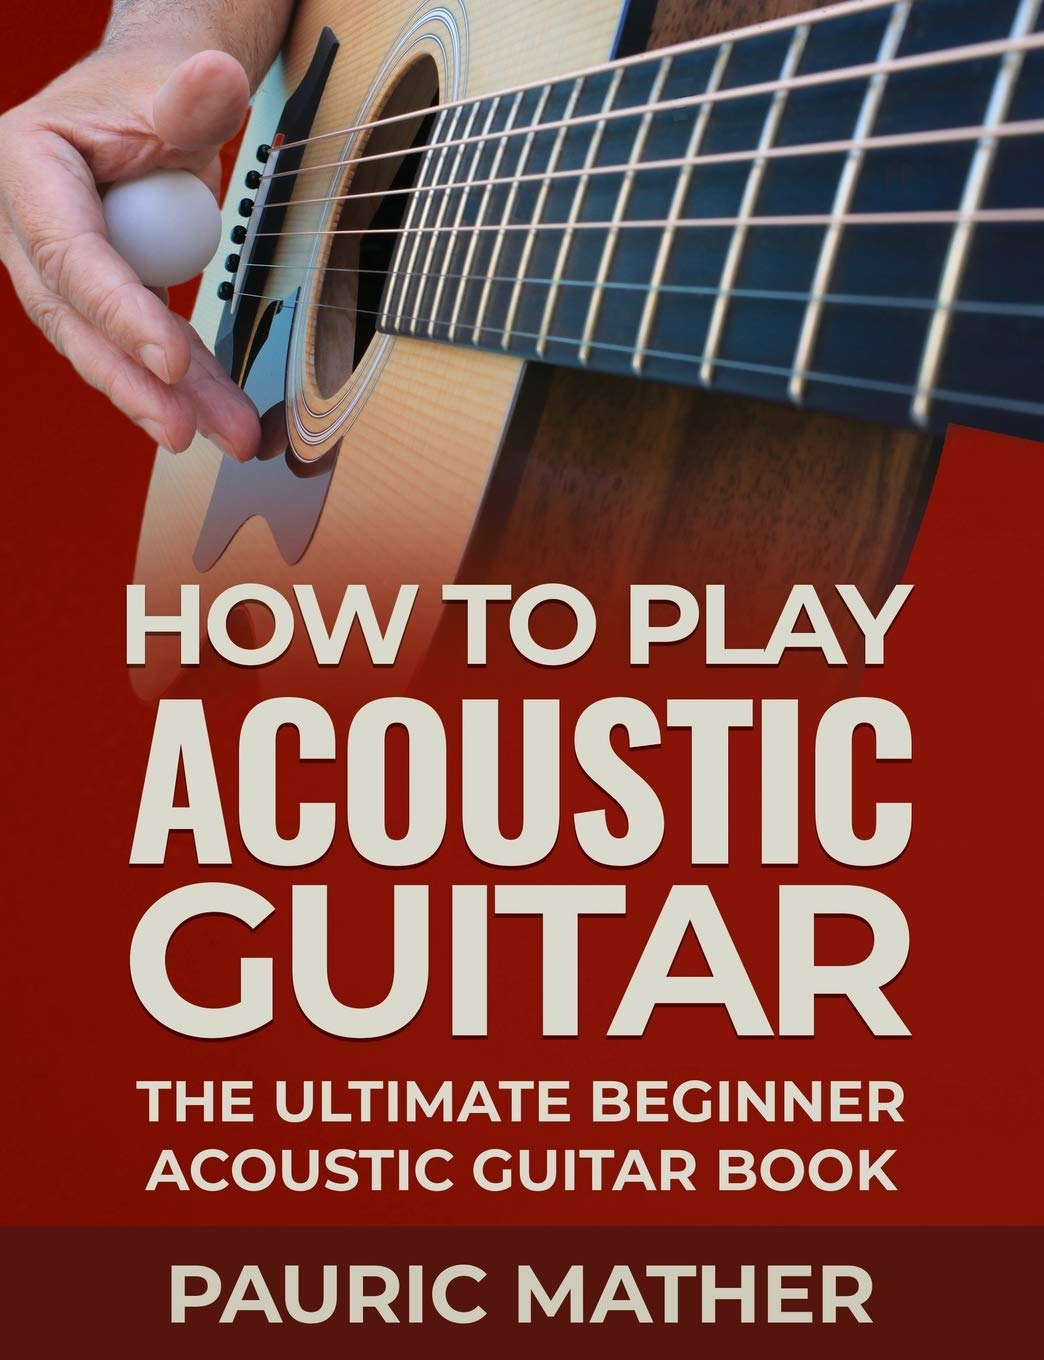 How To Play Acoustic Guitar: The Ultimate Beginner Acoustic Guitar ...